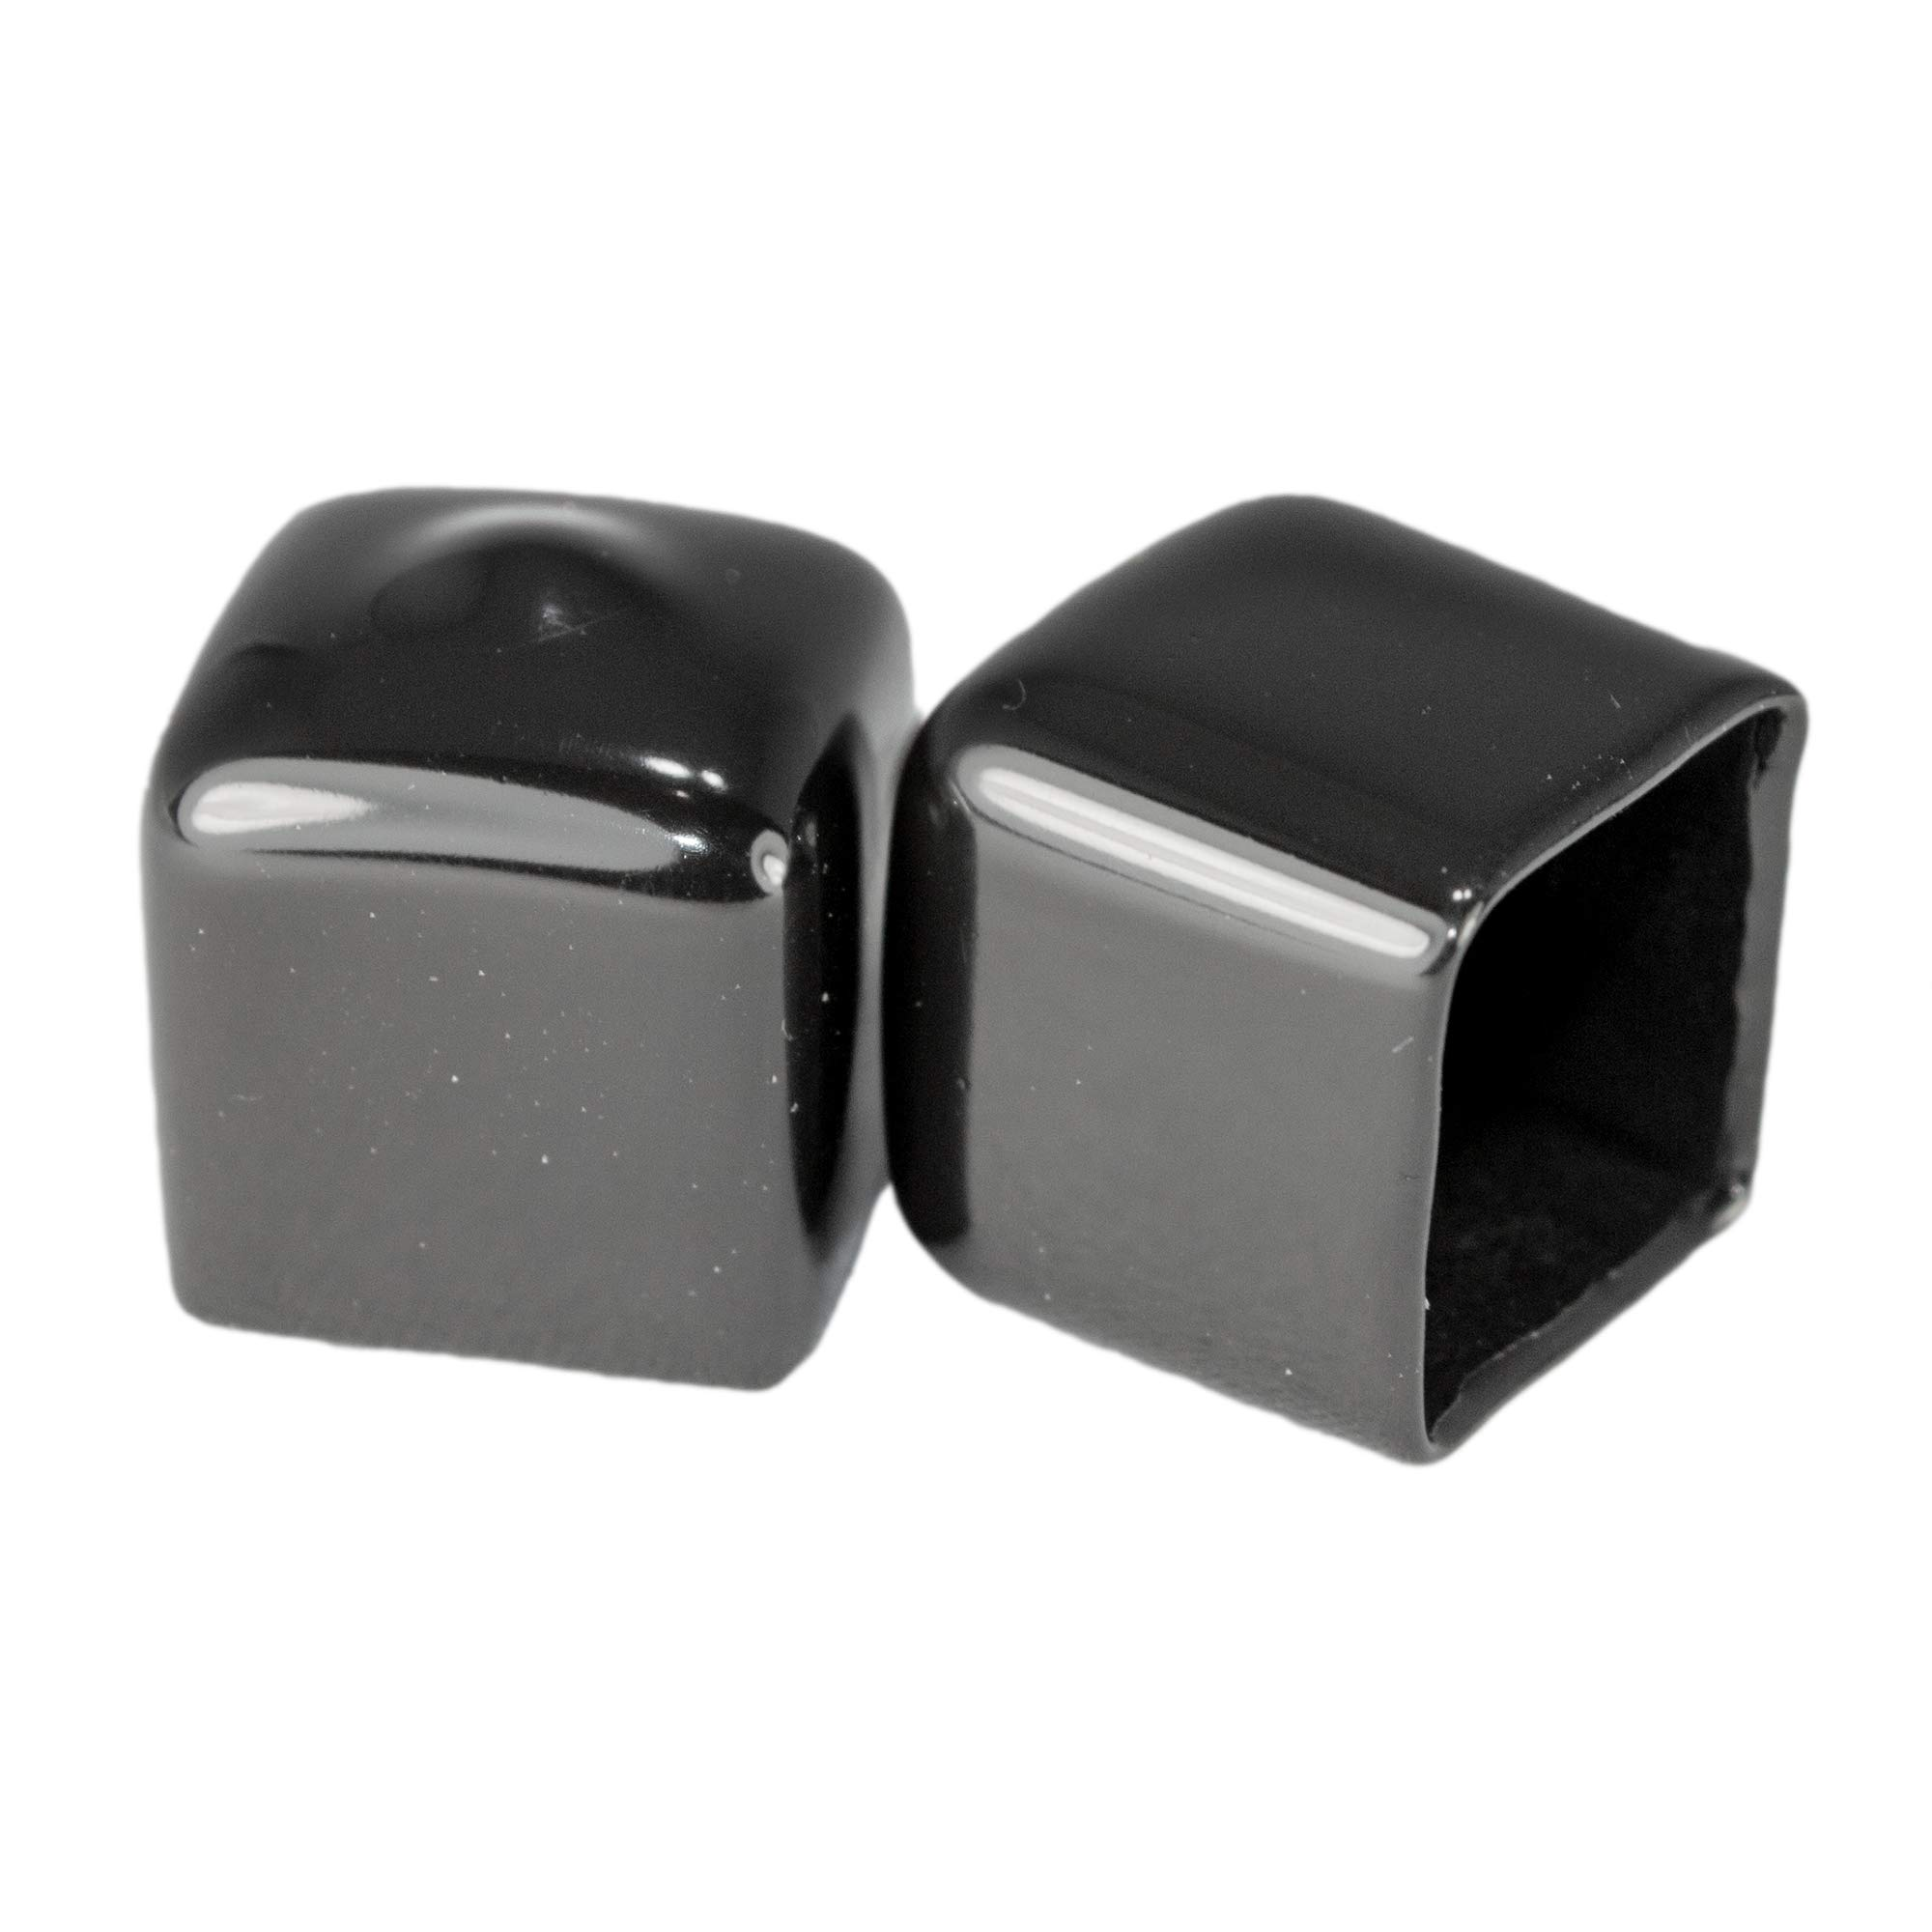 Prescott Plastics 1/2 Inch: Square Black Vinyl End Cap, Flexible Pipe Post Rubber Cover ((B) Pack of 20 Caps) by Prescott Plastics